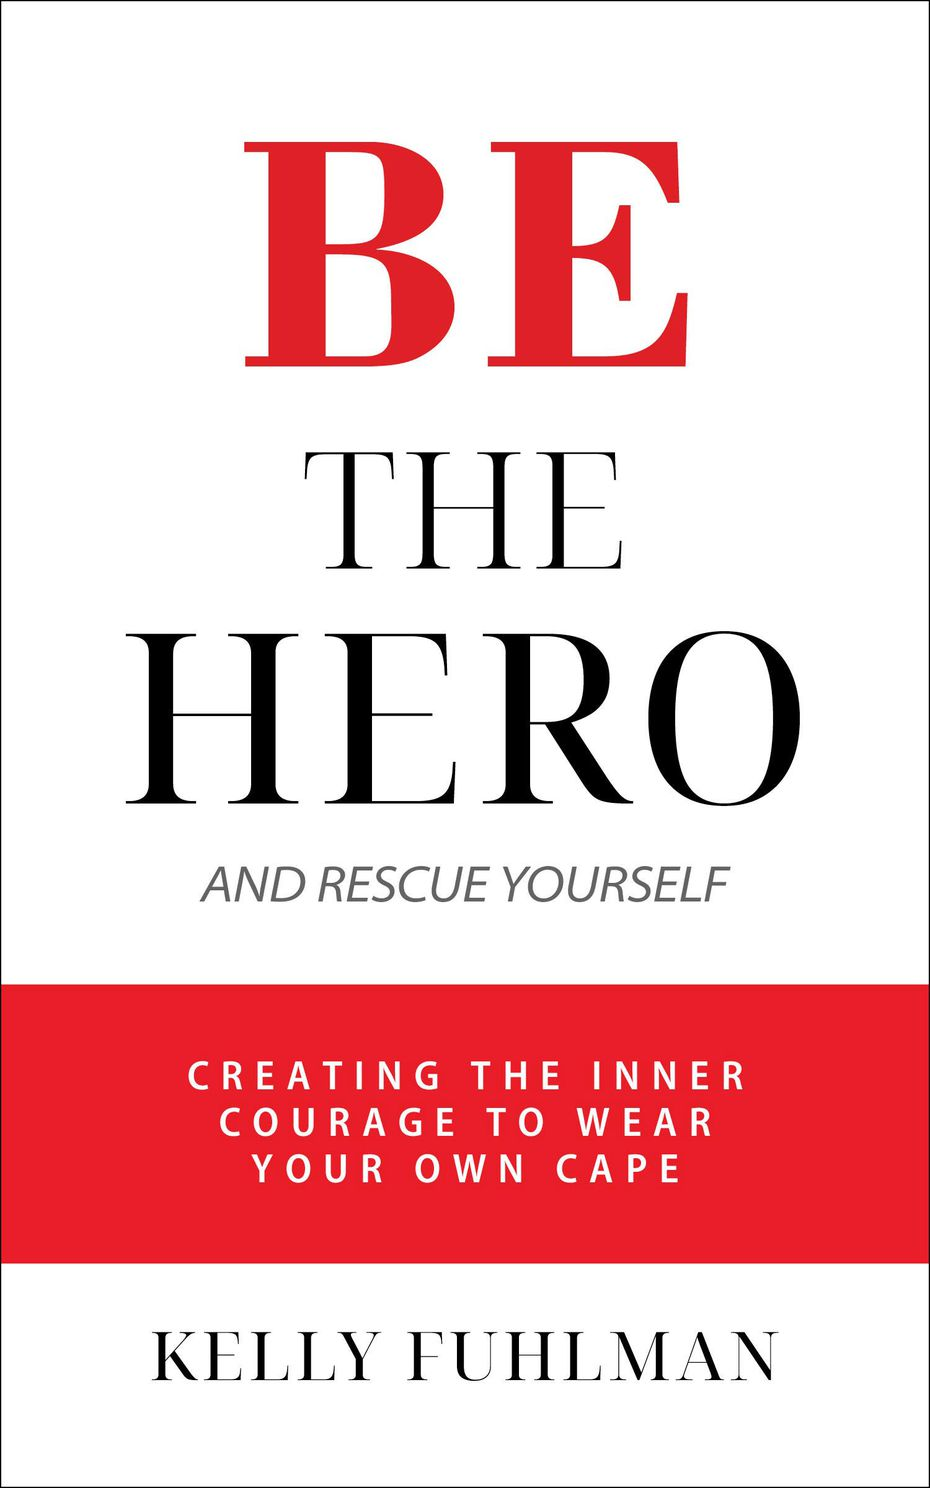 """""""Be the Hero and Rescue Yourself: Creating the Inner Courage to Wear Your Own Cape"""" by Kelly Fuhlman aims to go beyond the """"10 easy steps"""" approach of many self-help books."""